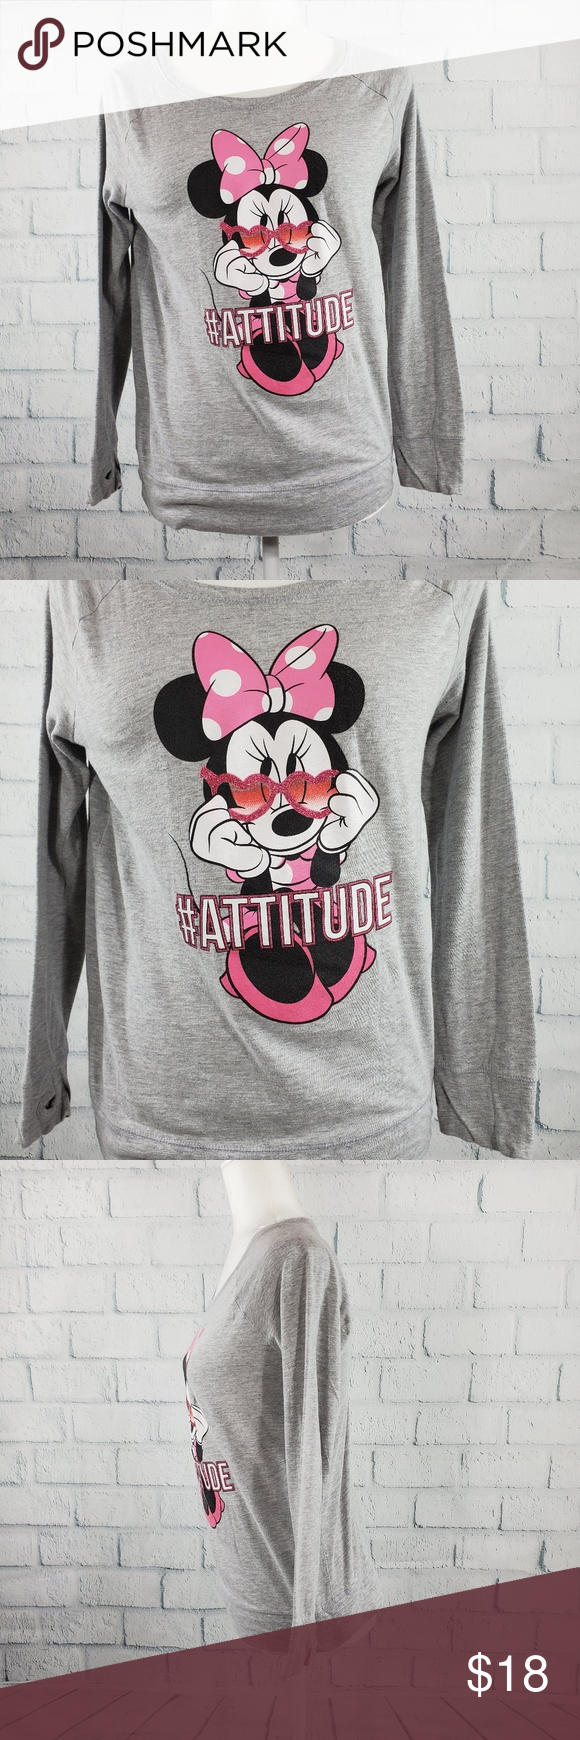 Disney Minnie Mouse  girls gray long sleeves tee Disney Minnie Mouse Attitude girls gray long sleeves tee with thumbs hole Perfect condition  Size XL 1416  Condition Like...